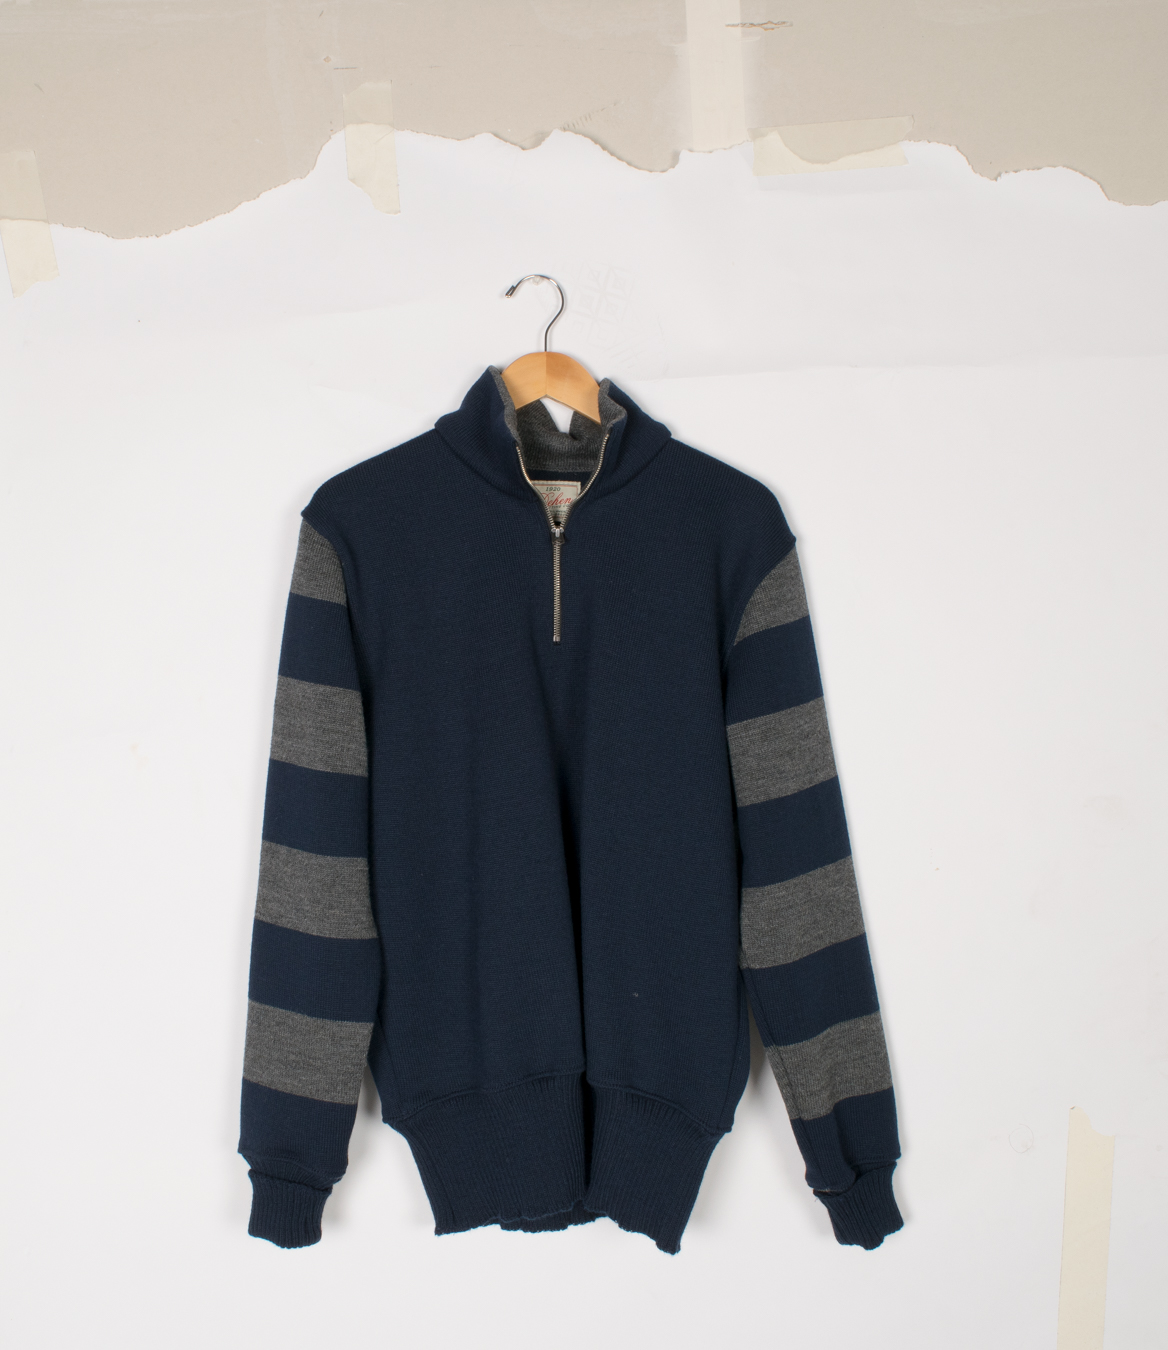 Motorcycle Sweater - Dark Navy/Charcoal - $295